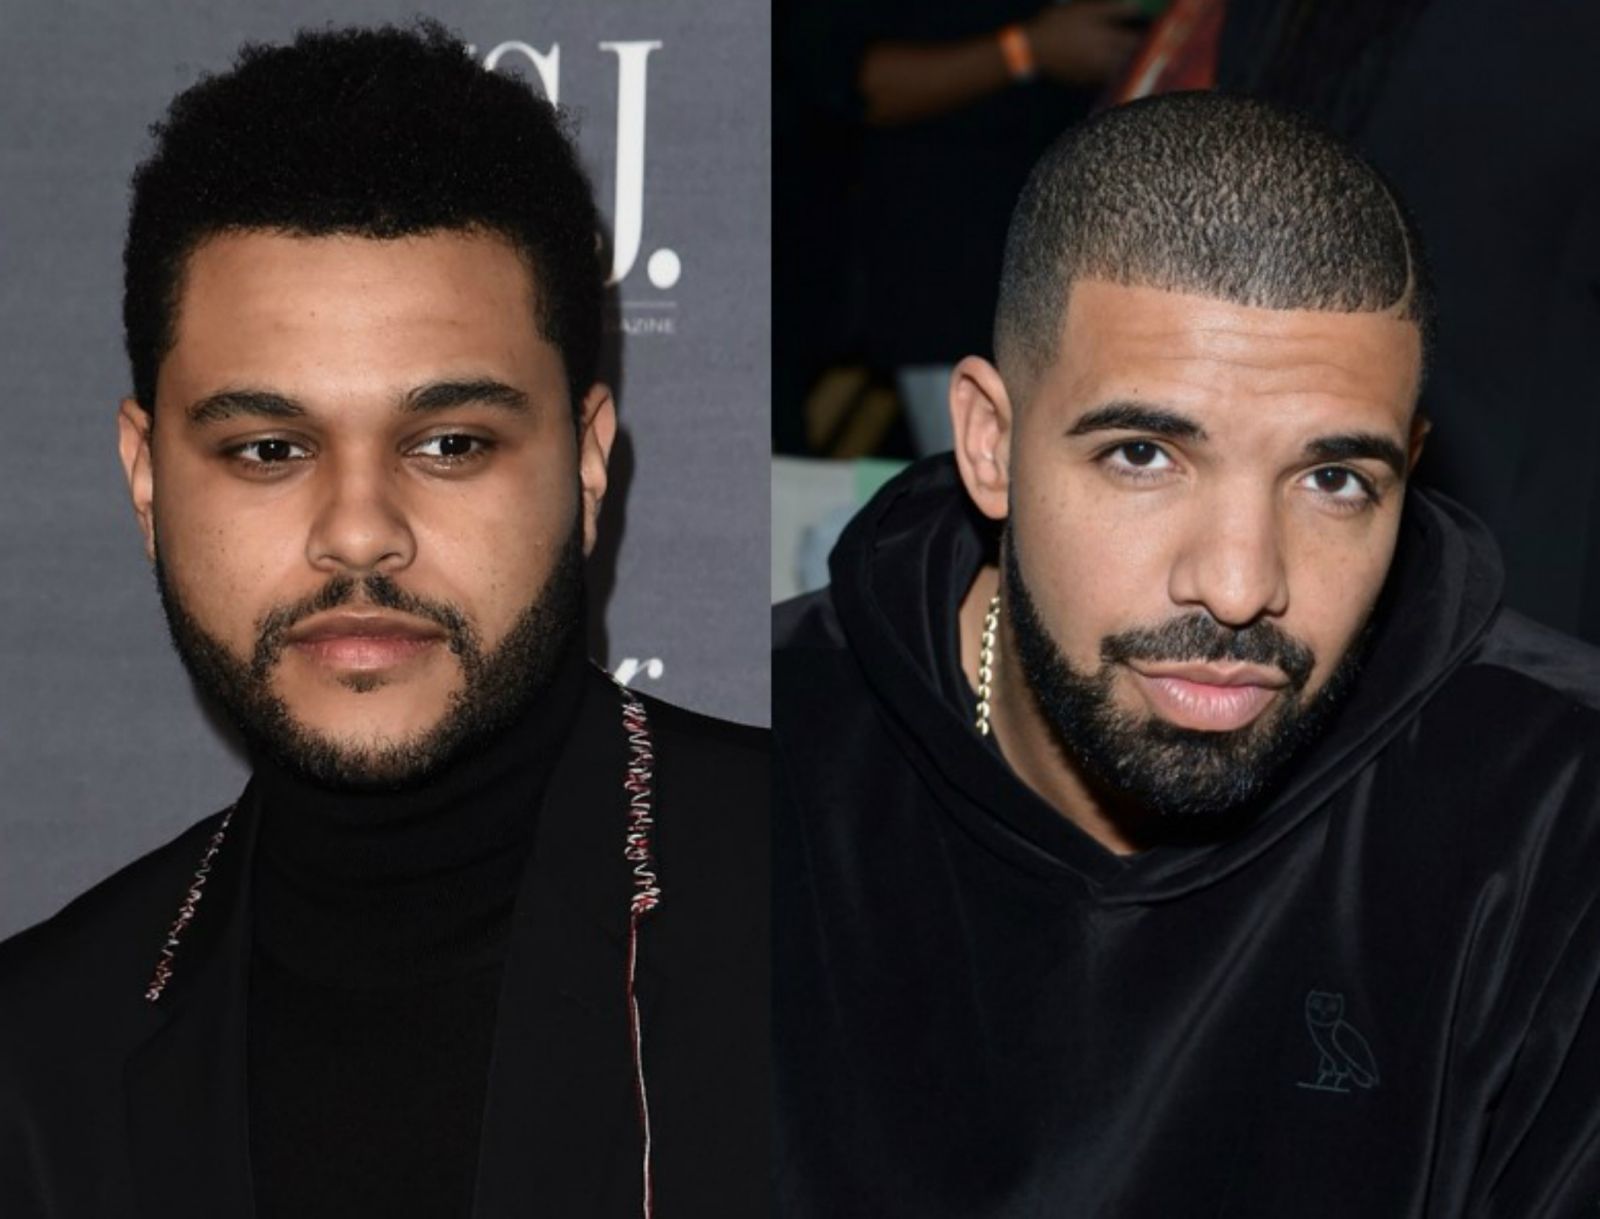 The Weeknd and Drake